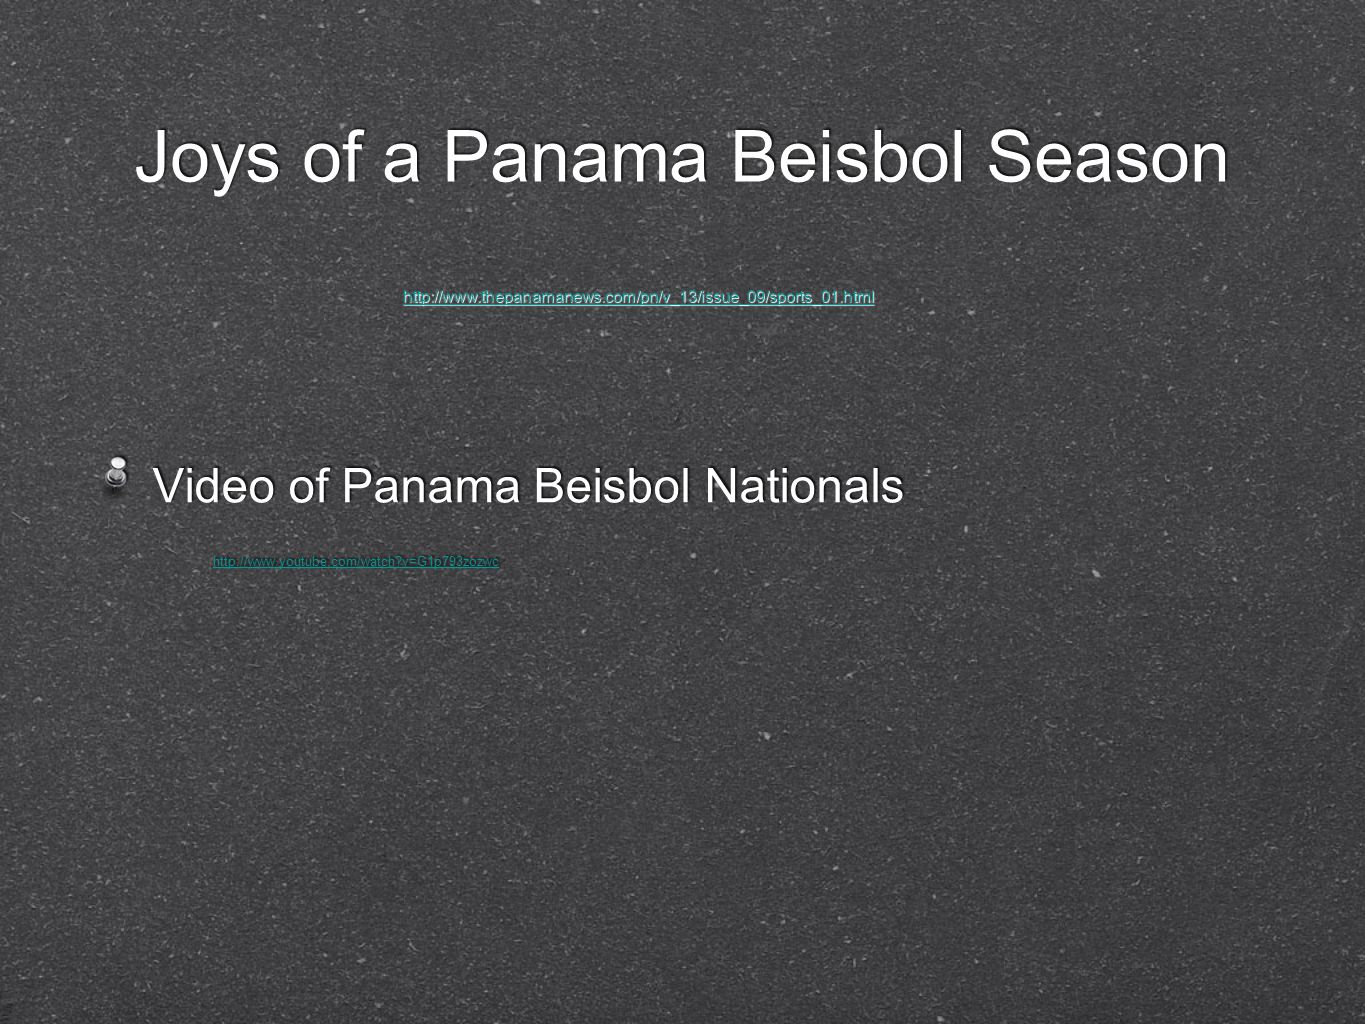 Joys of a Panama Beisbol Season Video of Panama Beisbol Nationals http://www.youtube.com/watch v=G1p793zozwc Video of Panama Beisbol Nationals http://www.youtube.com/watch v=G1p793zozwc http://www.thepanamanews.com/pn/v_13/issue_09/sports_01.html